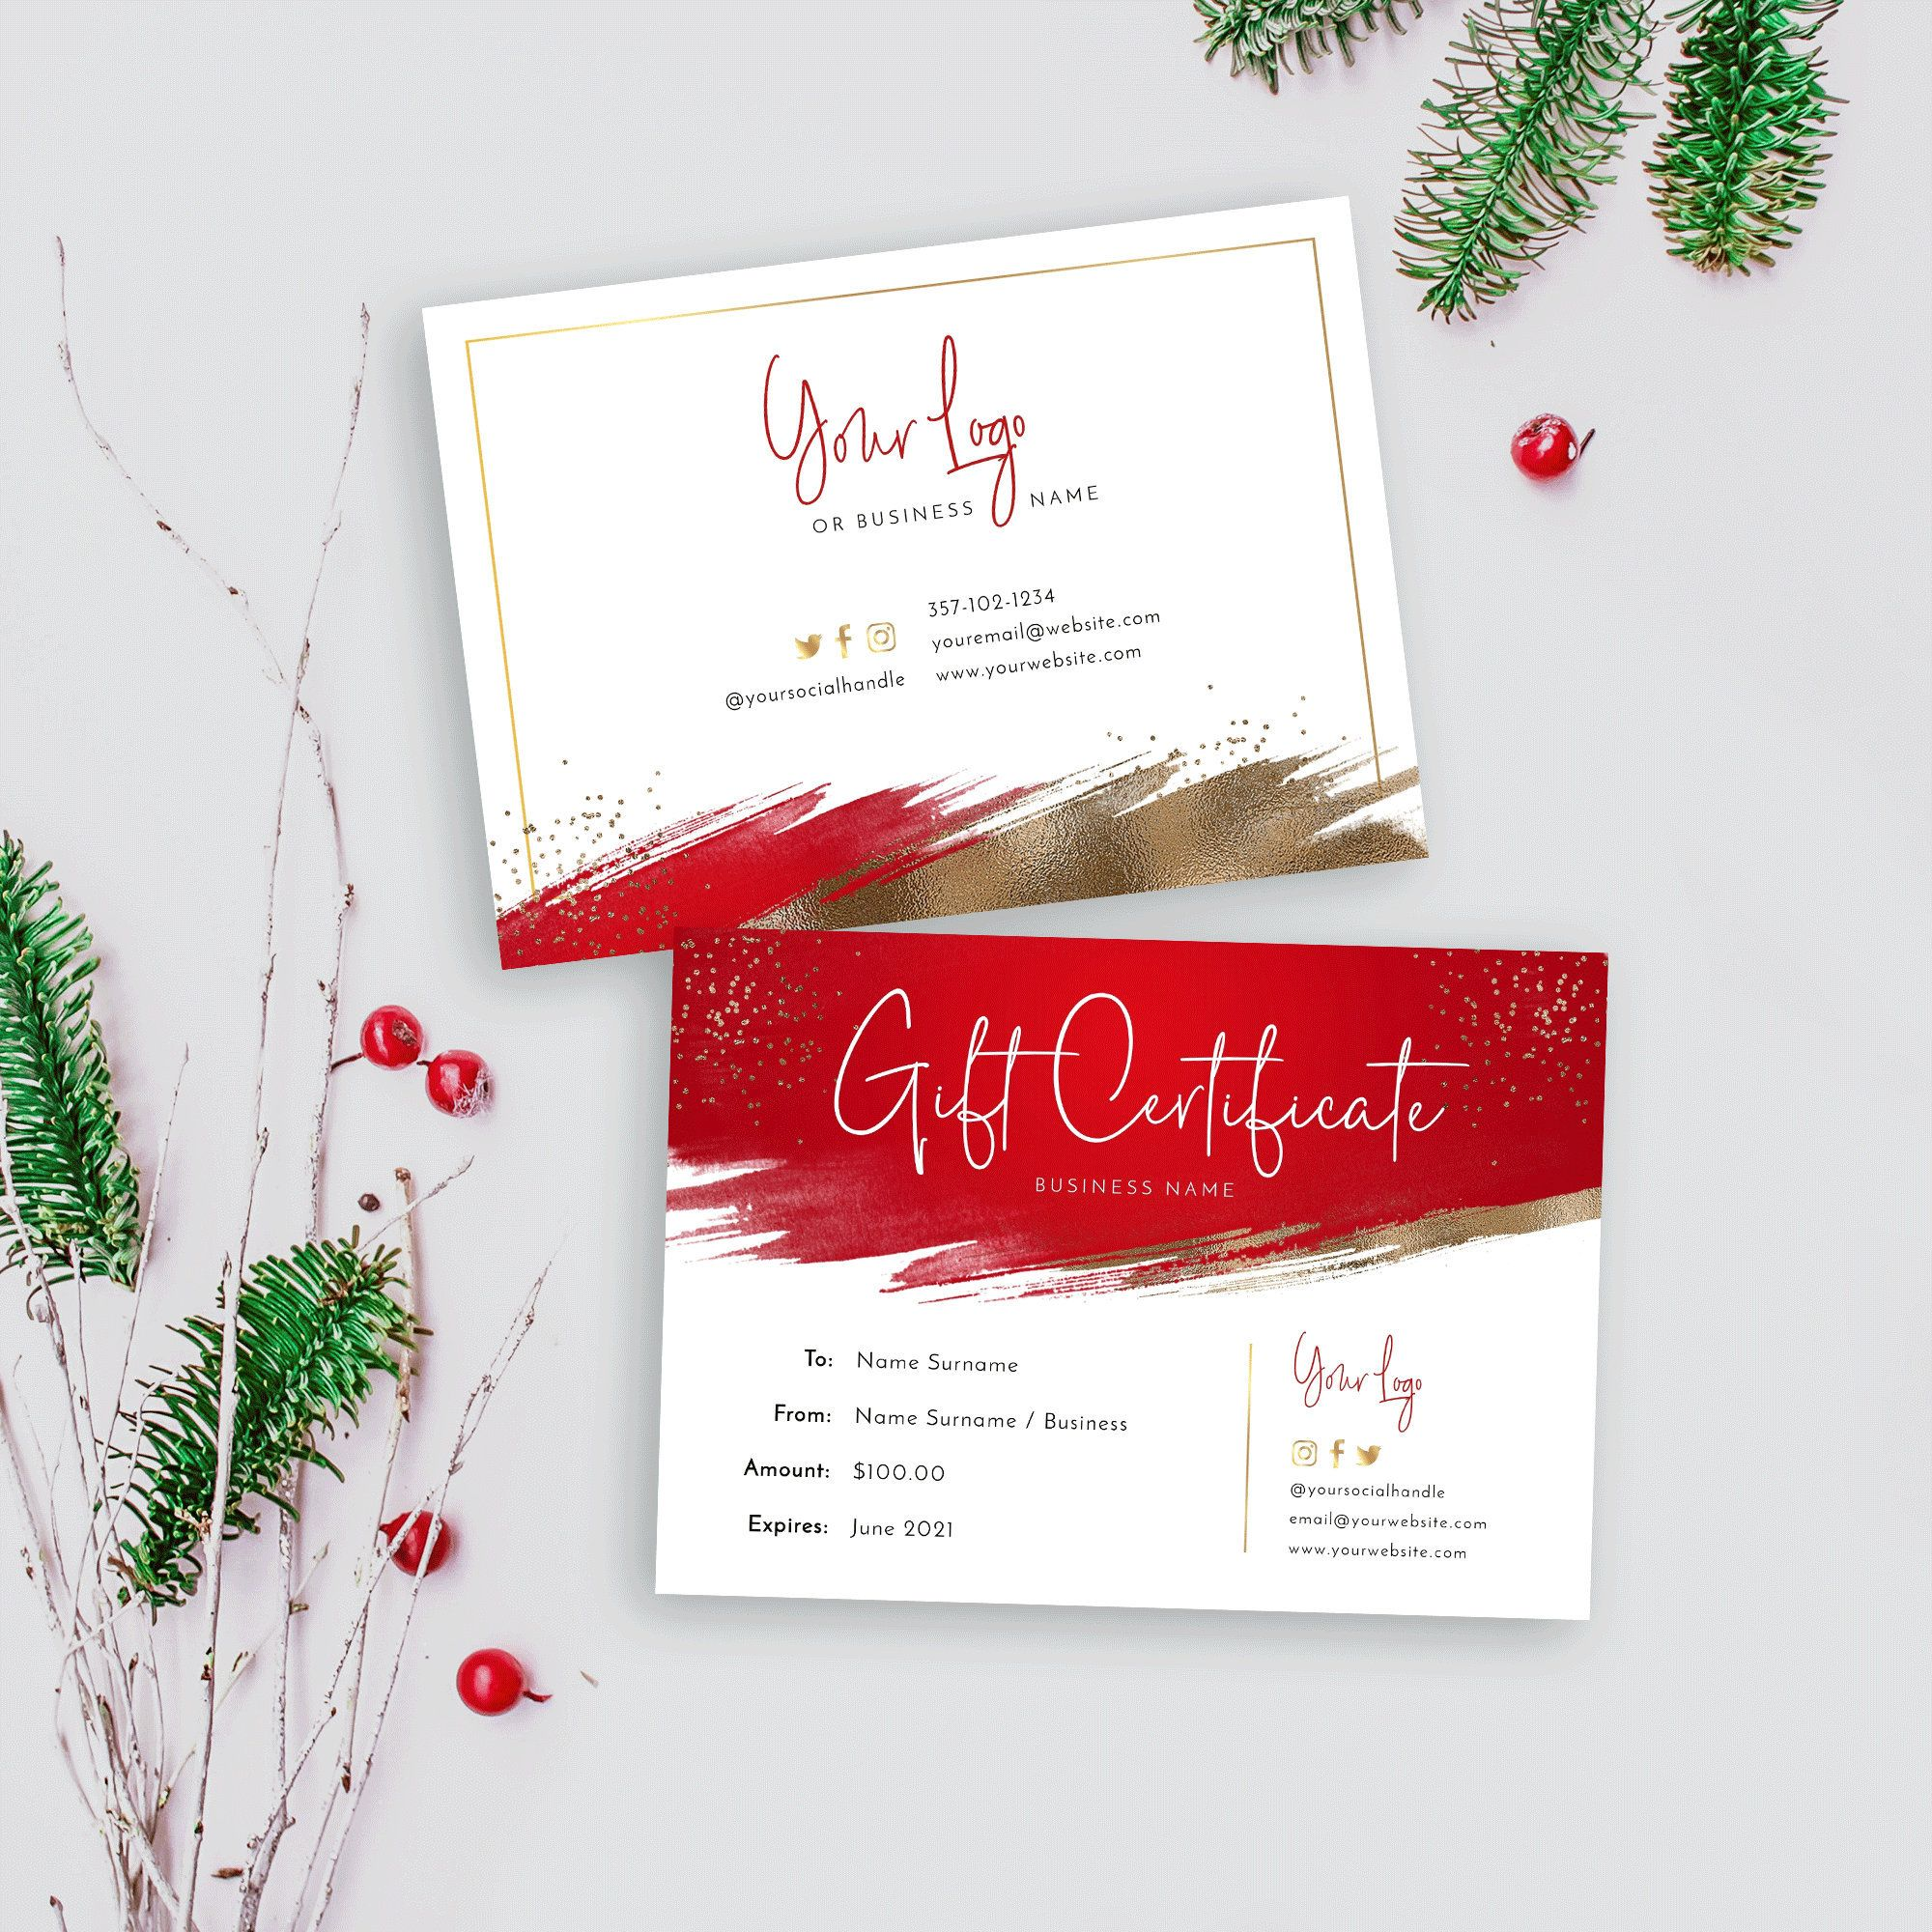 Christmas Gift Certificate Template Holiday Gift Voucher Etsy Christmas Gift Certificate Template Holiday Gift Card Christmas Gift Vouchers